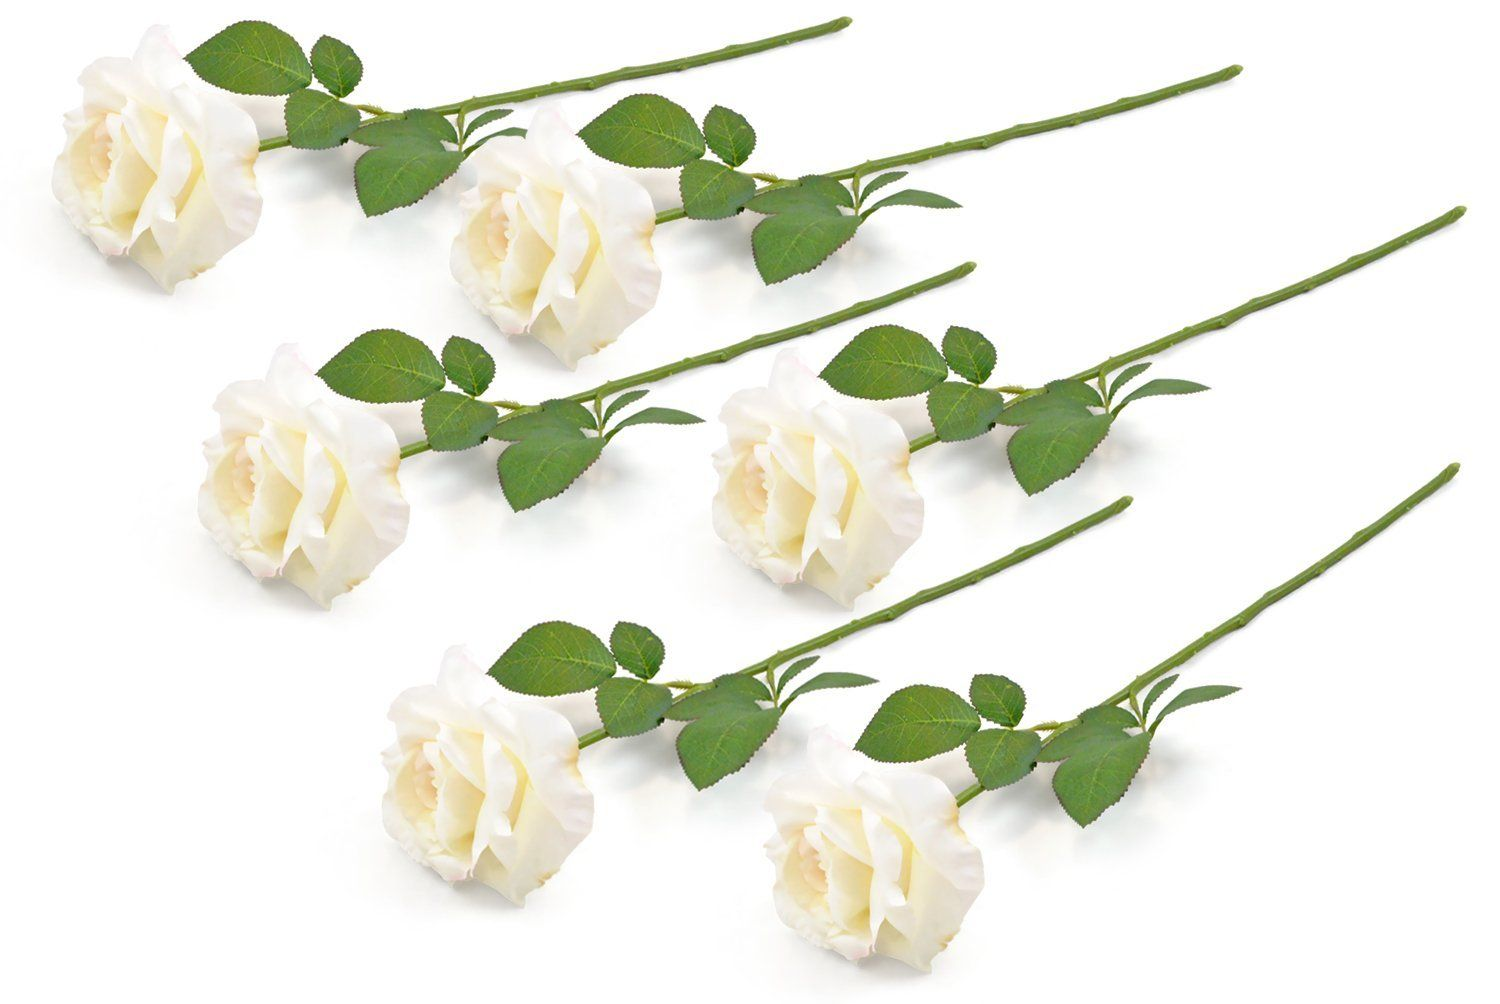 Dii artificial silk craft flowers for bouquets weddings wreaths dii artificial silk craft flowers for bouquets weddings wreaths and crafts single izmirmasajfo